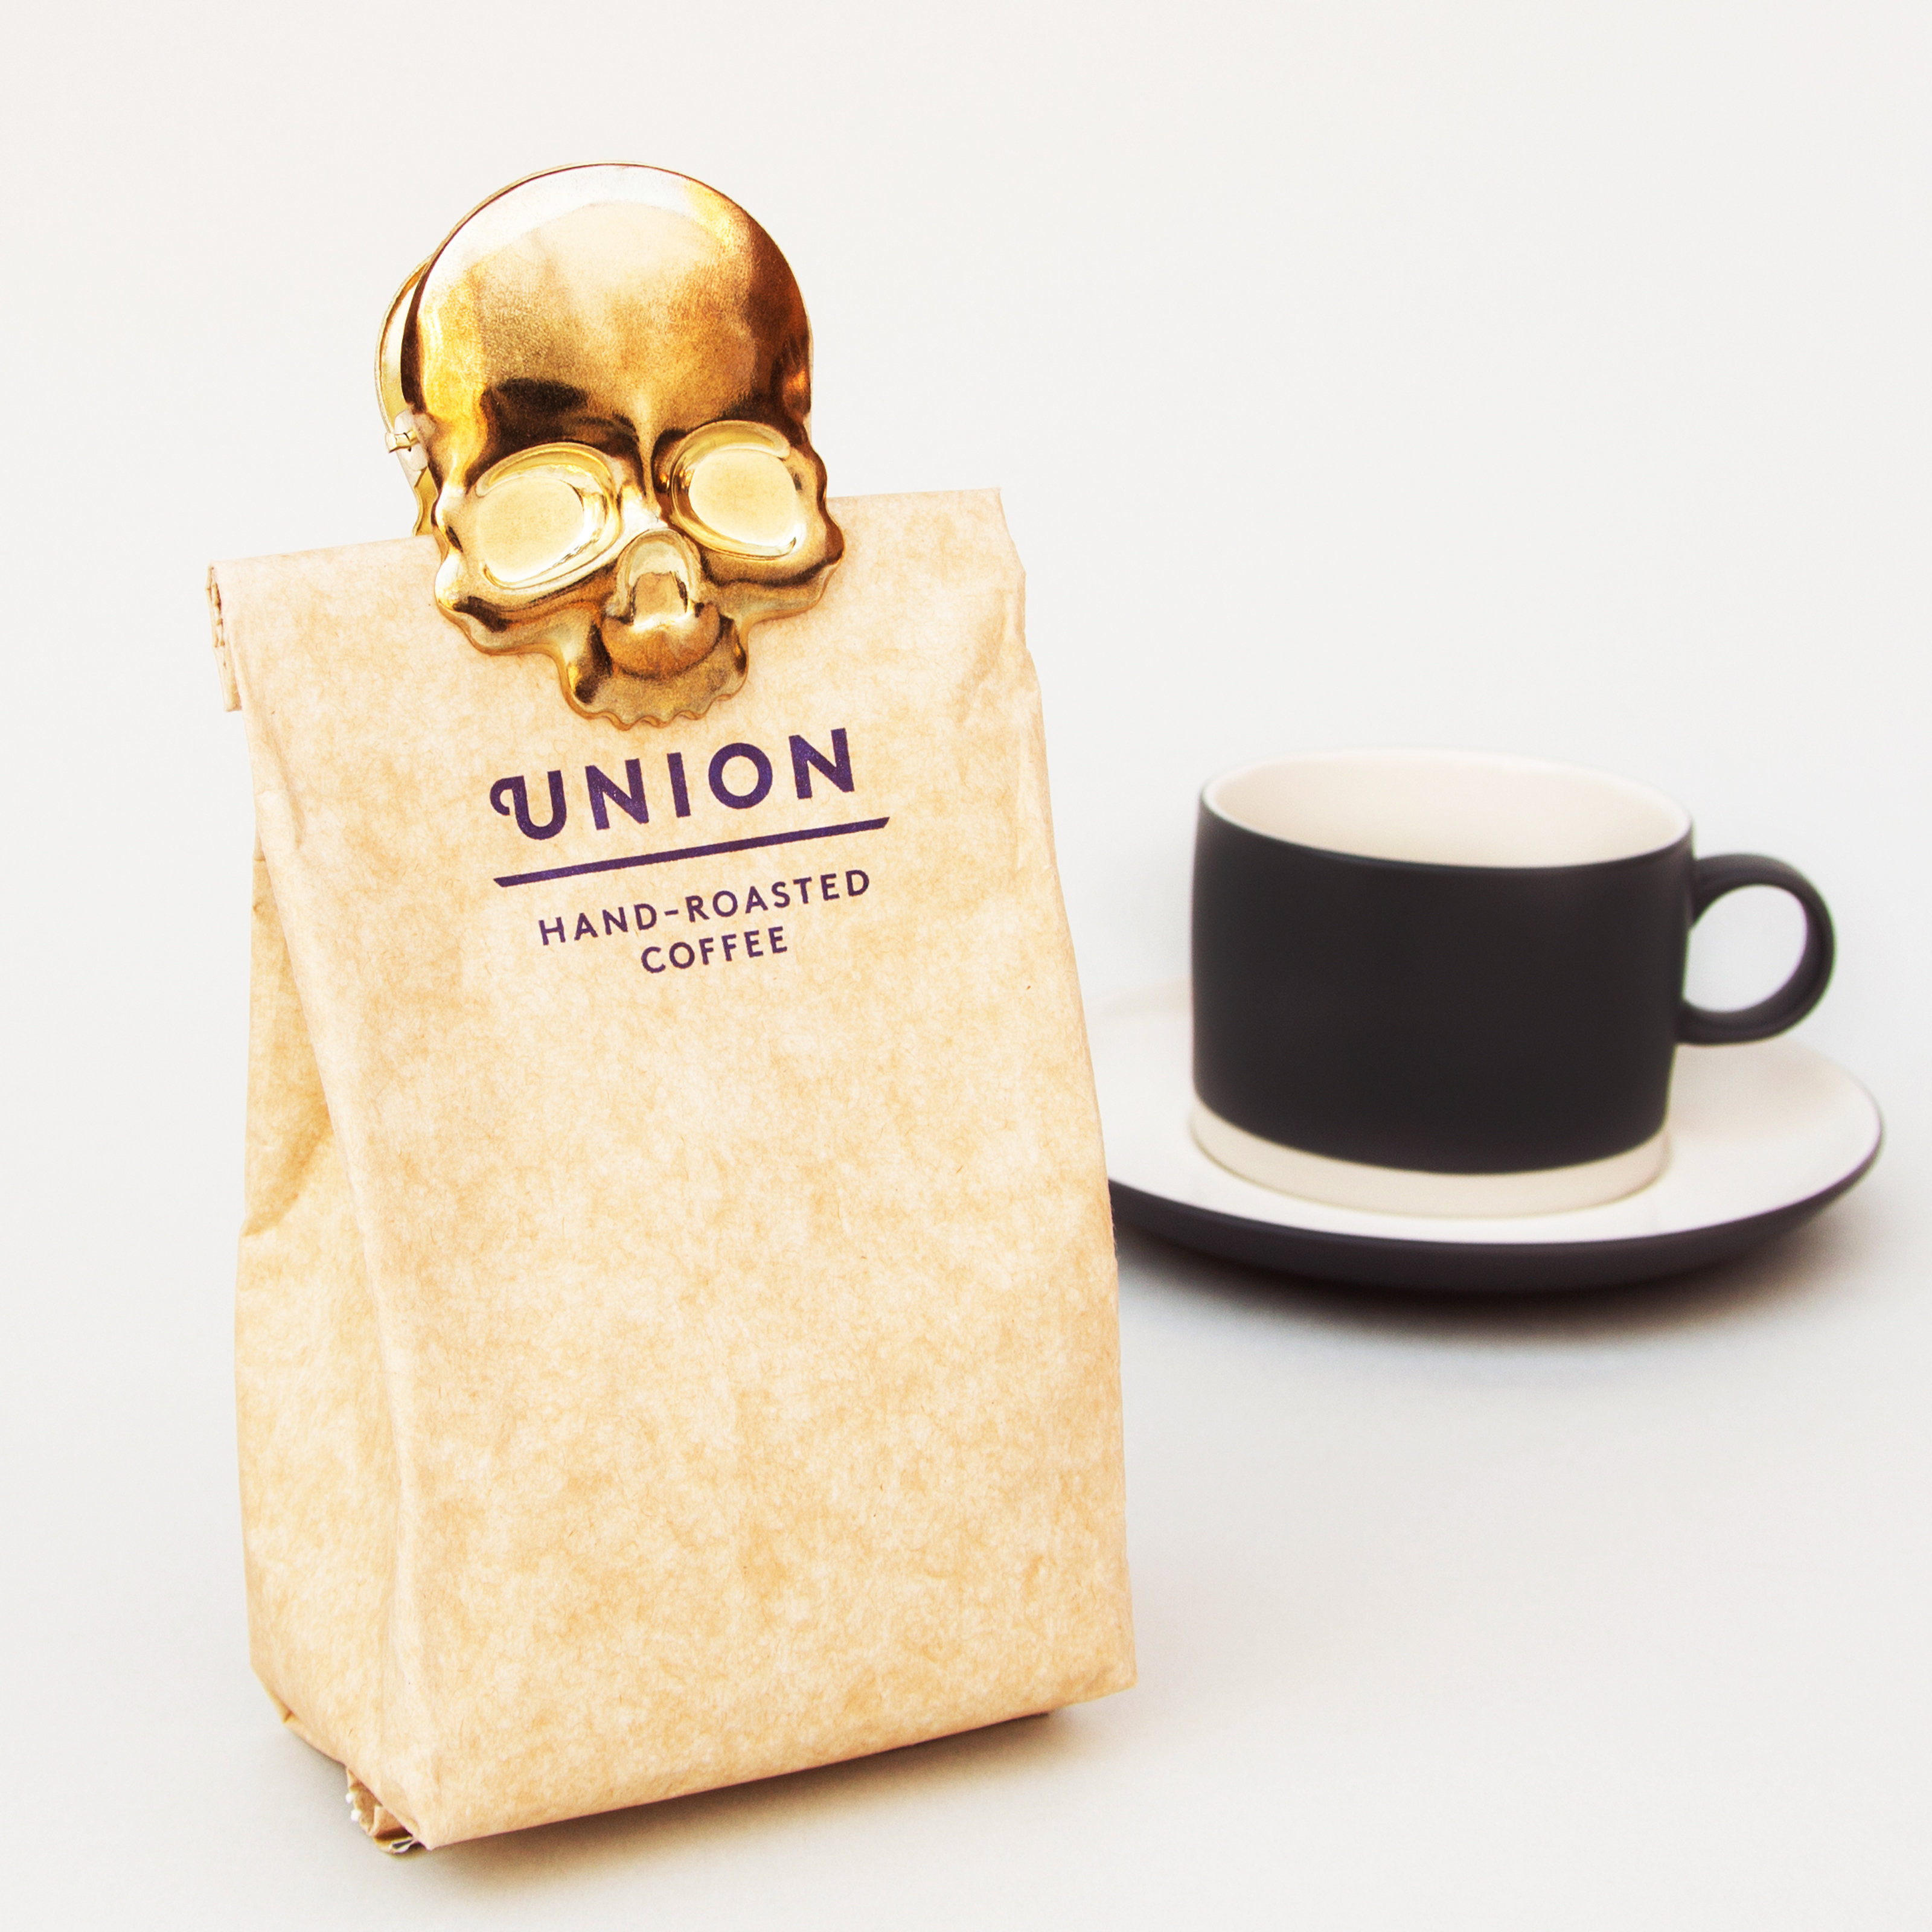 Skull clip sealing a bad of coffee beans